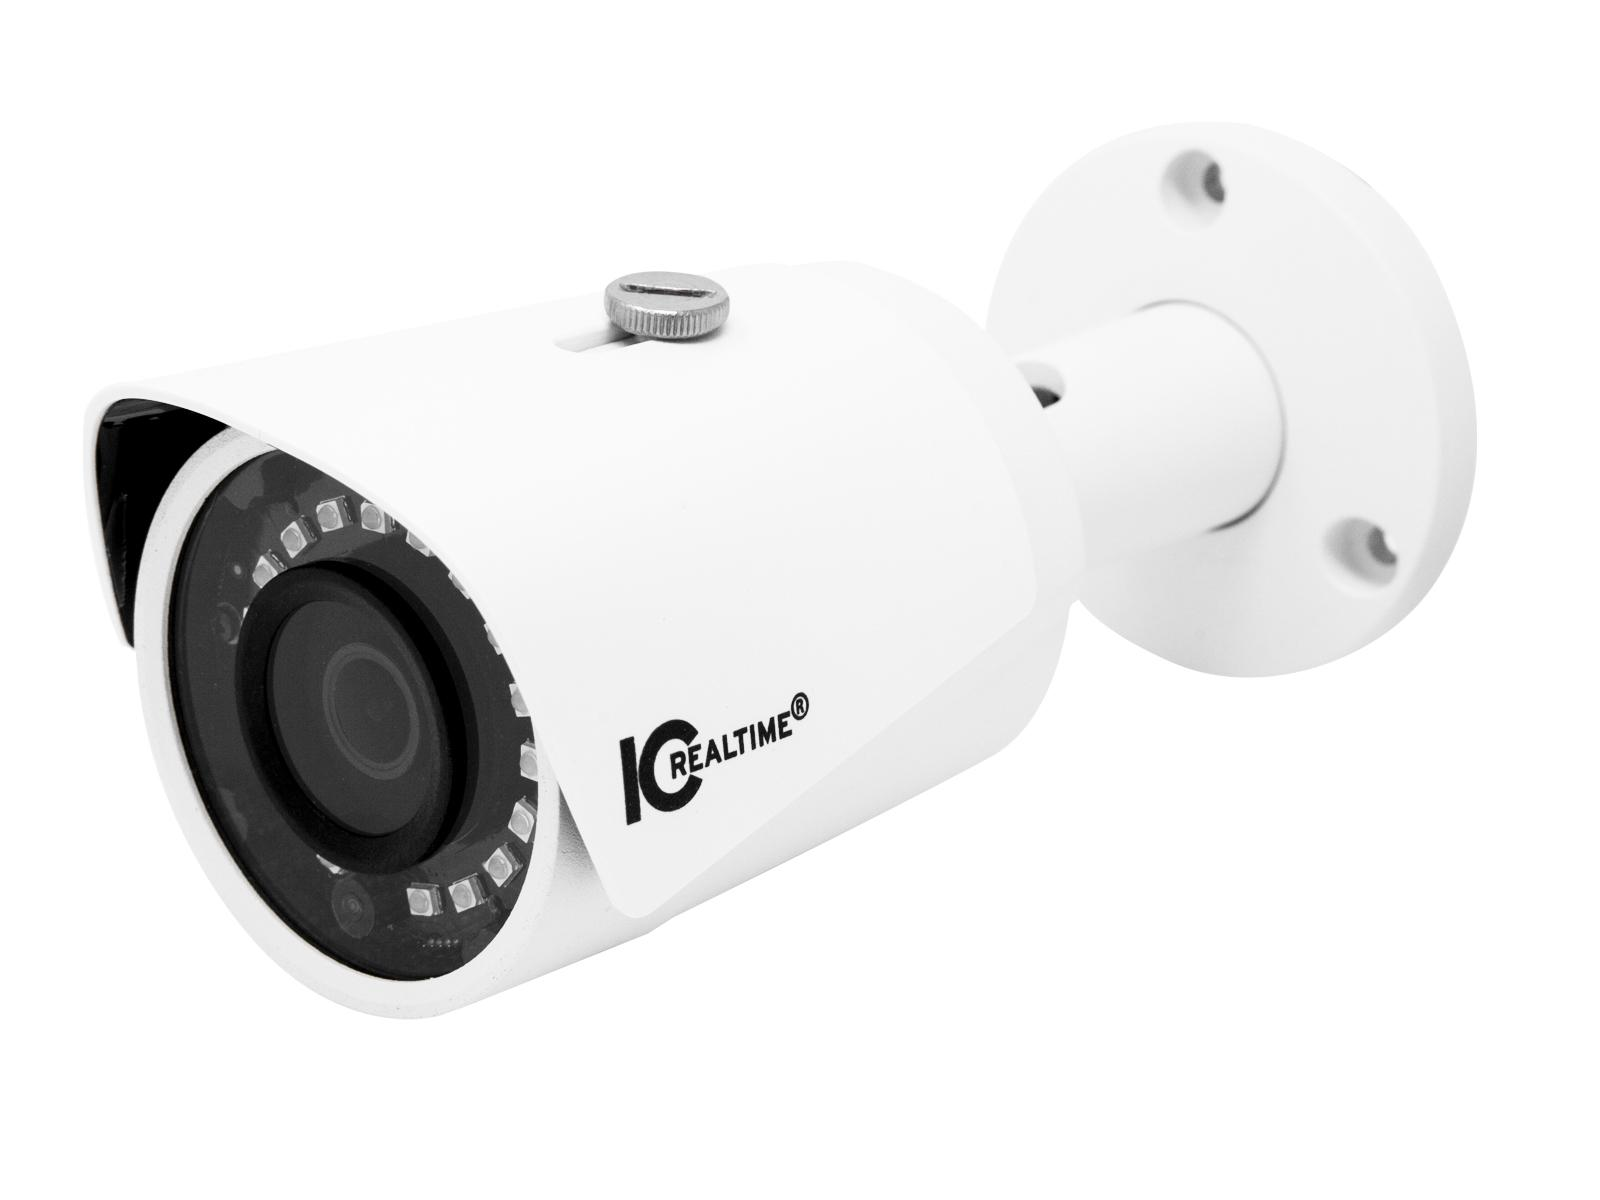 ICR-B2001-IR 2MP IP Indoor/Outdoor Bullet Camera/3.6mm Lens/98ft IR/PoE Capable by ICRealtime